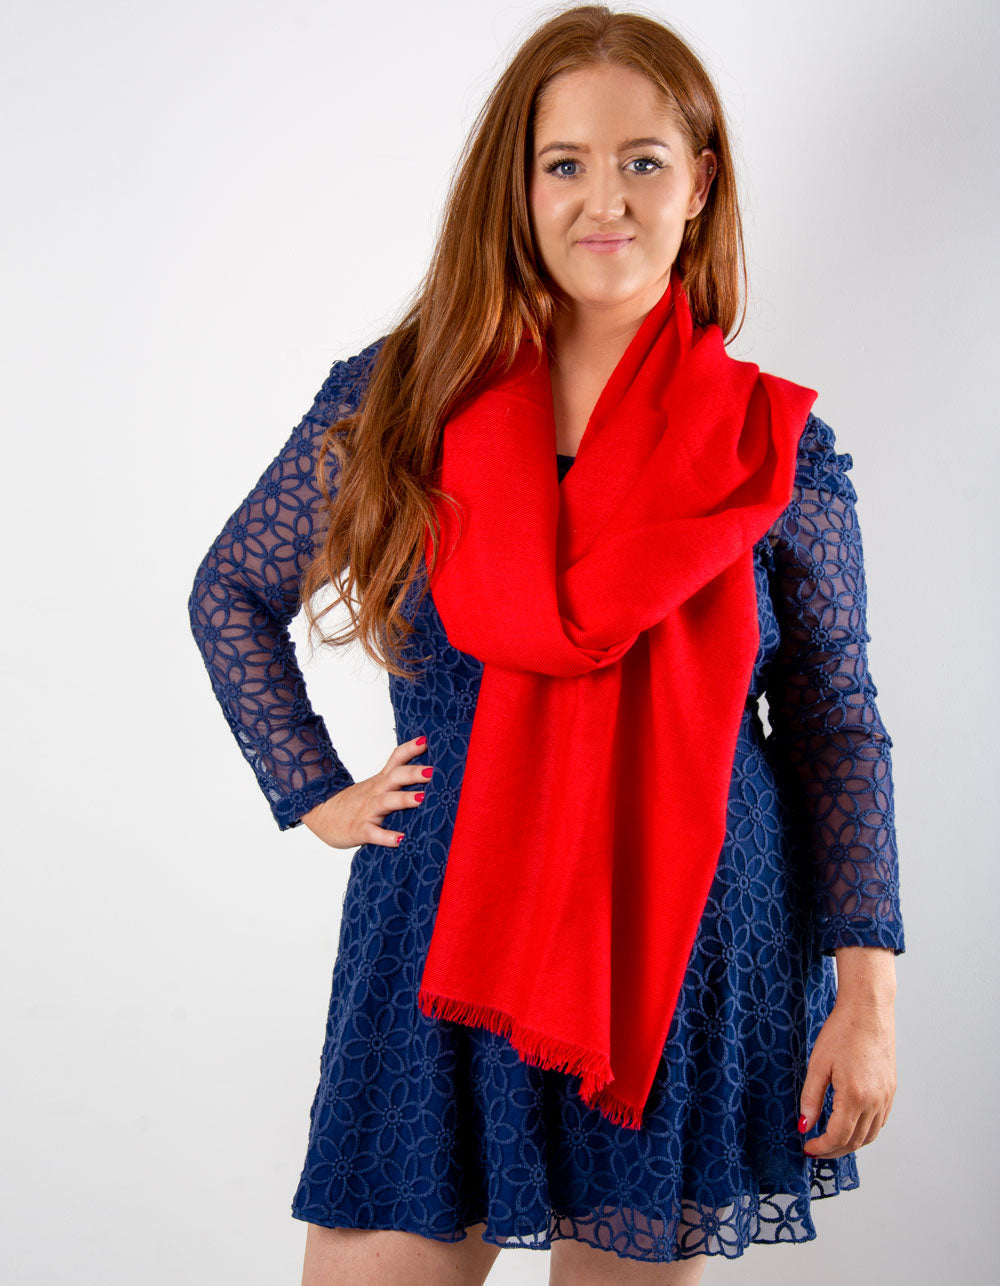 an image showing a cashmere wedding pashmina in red